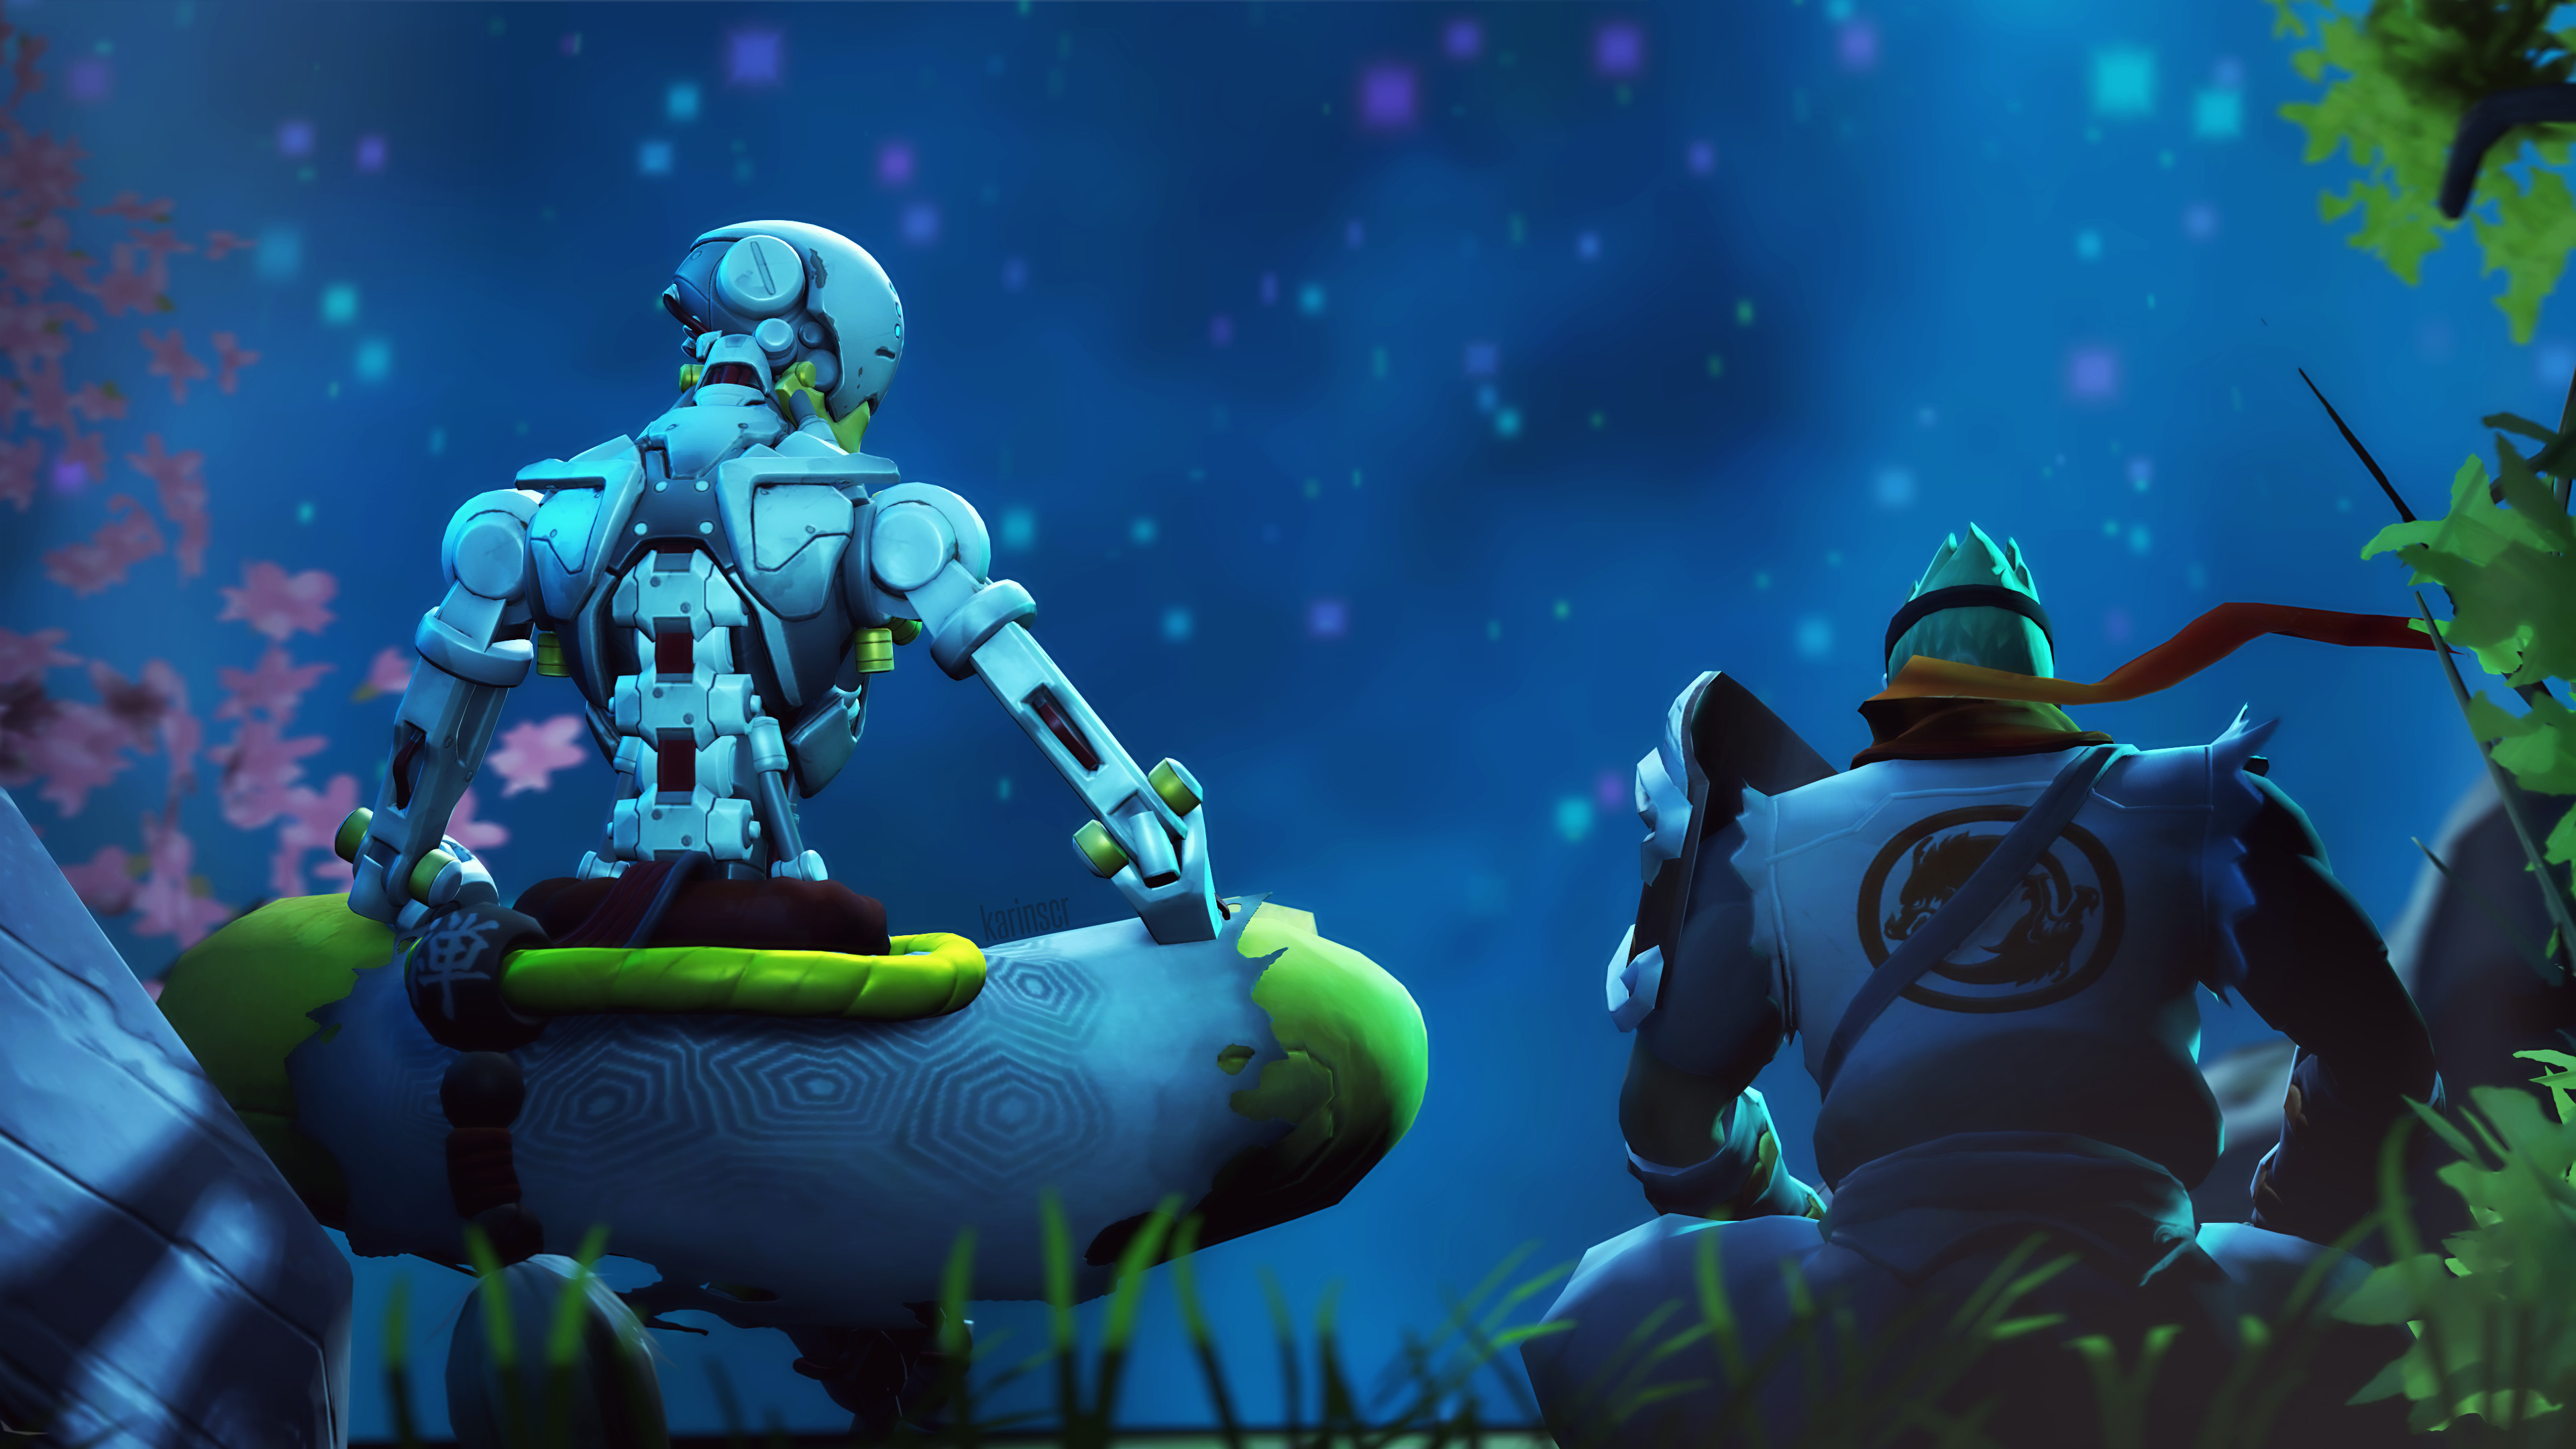 3840x2160  - genji, zenyatta, overwatch, stars, sitting # original  resolution. genji wallpapers ...